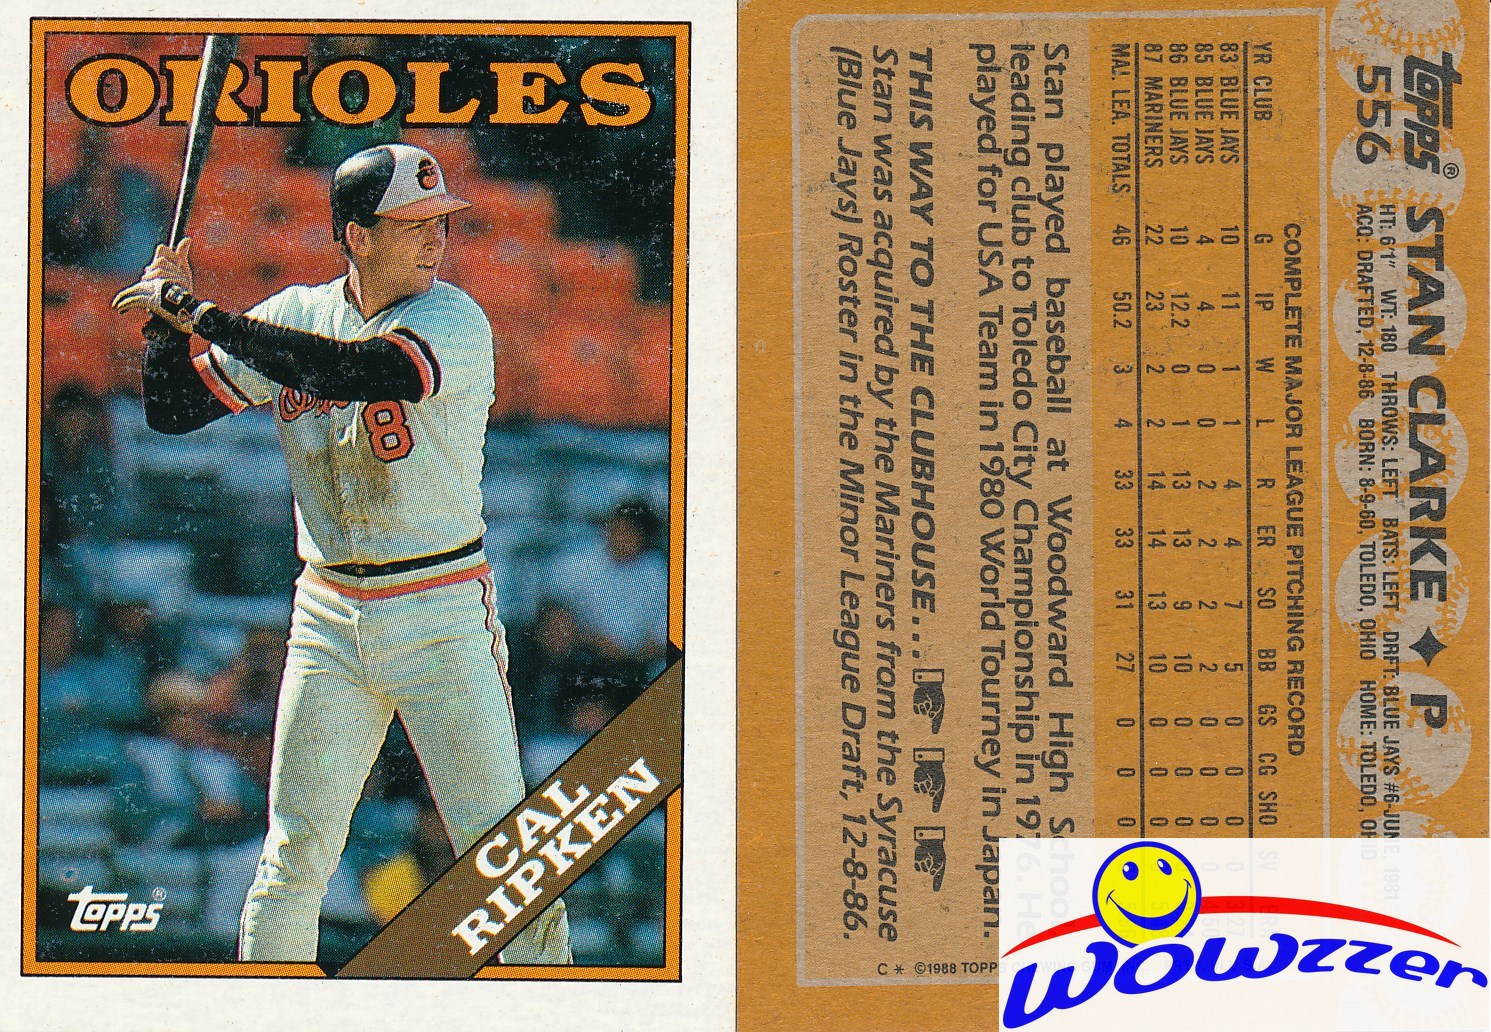 Details About 1988 Topps Cal Ripken Wrong Back Error Card Vintage Over 20 Years Old